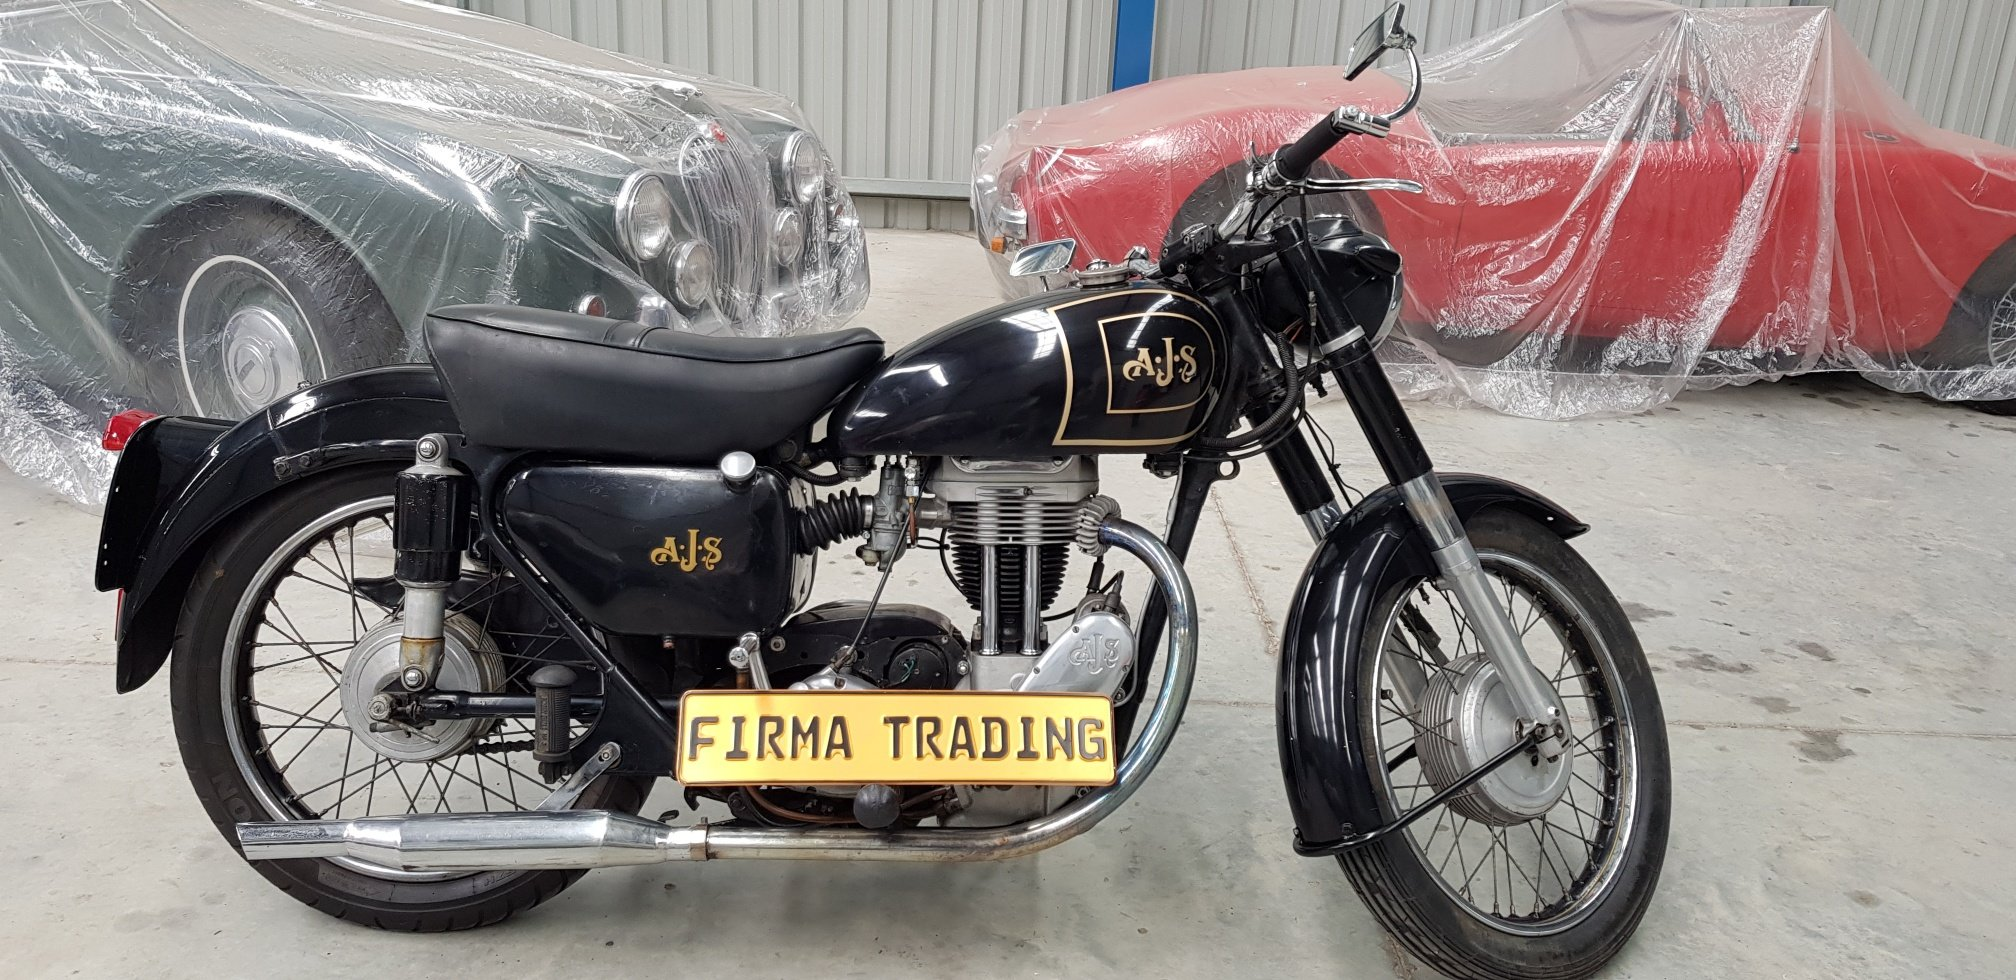 1956 AJS Single 350cc By Firma Trading Australia For Sale (picture 1 of 6)